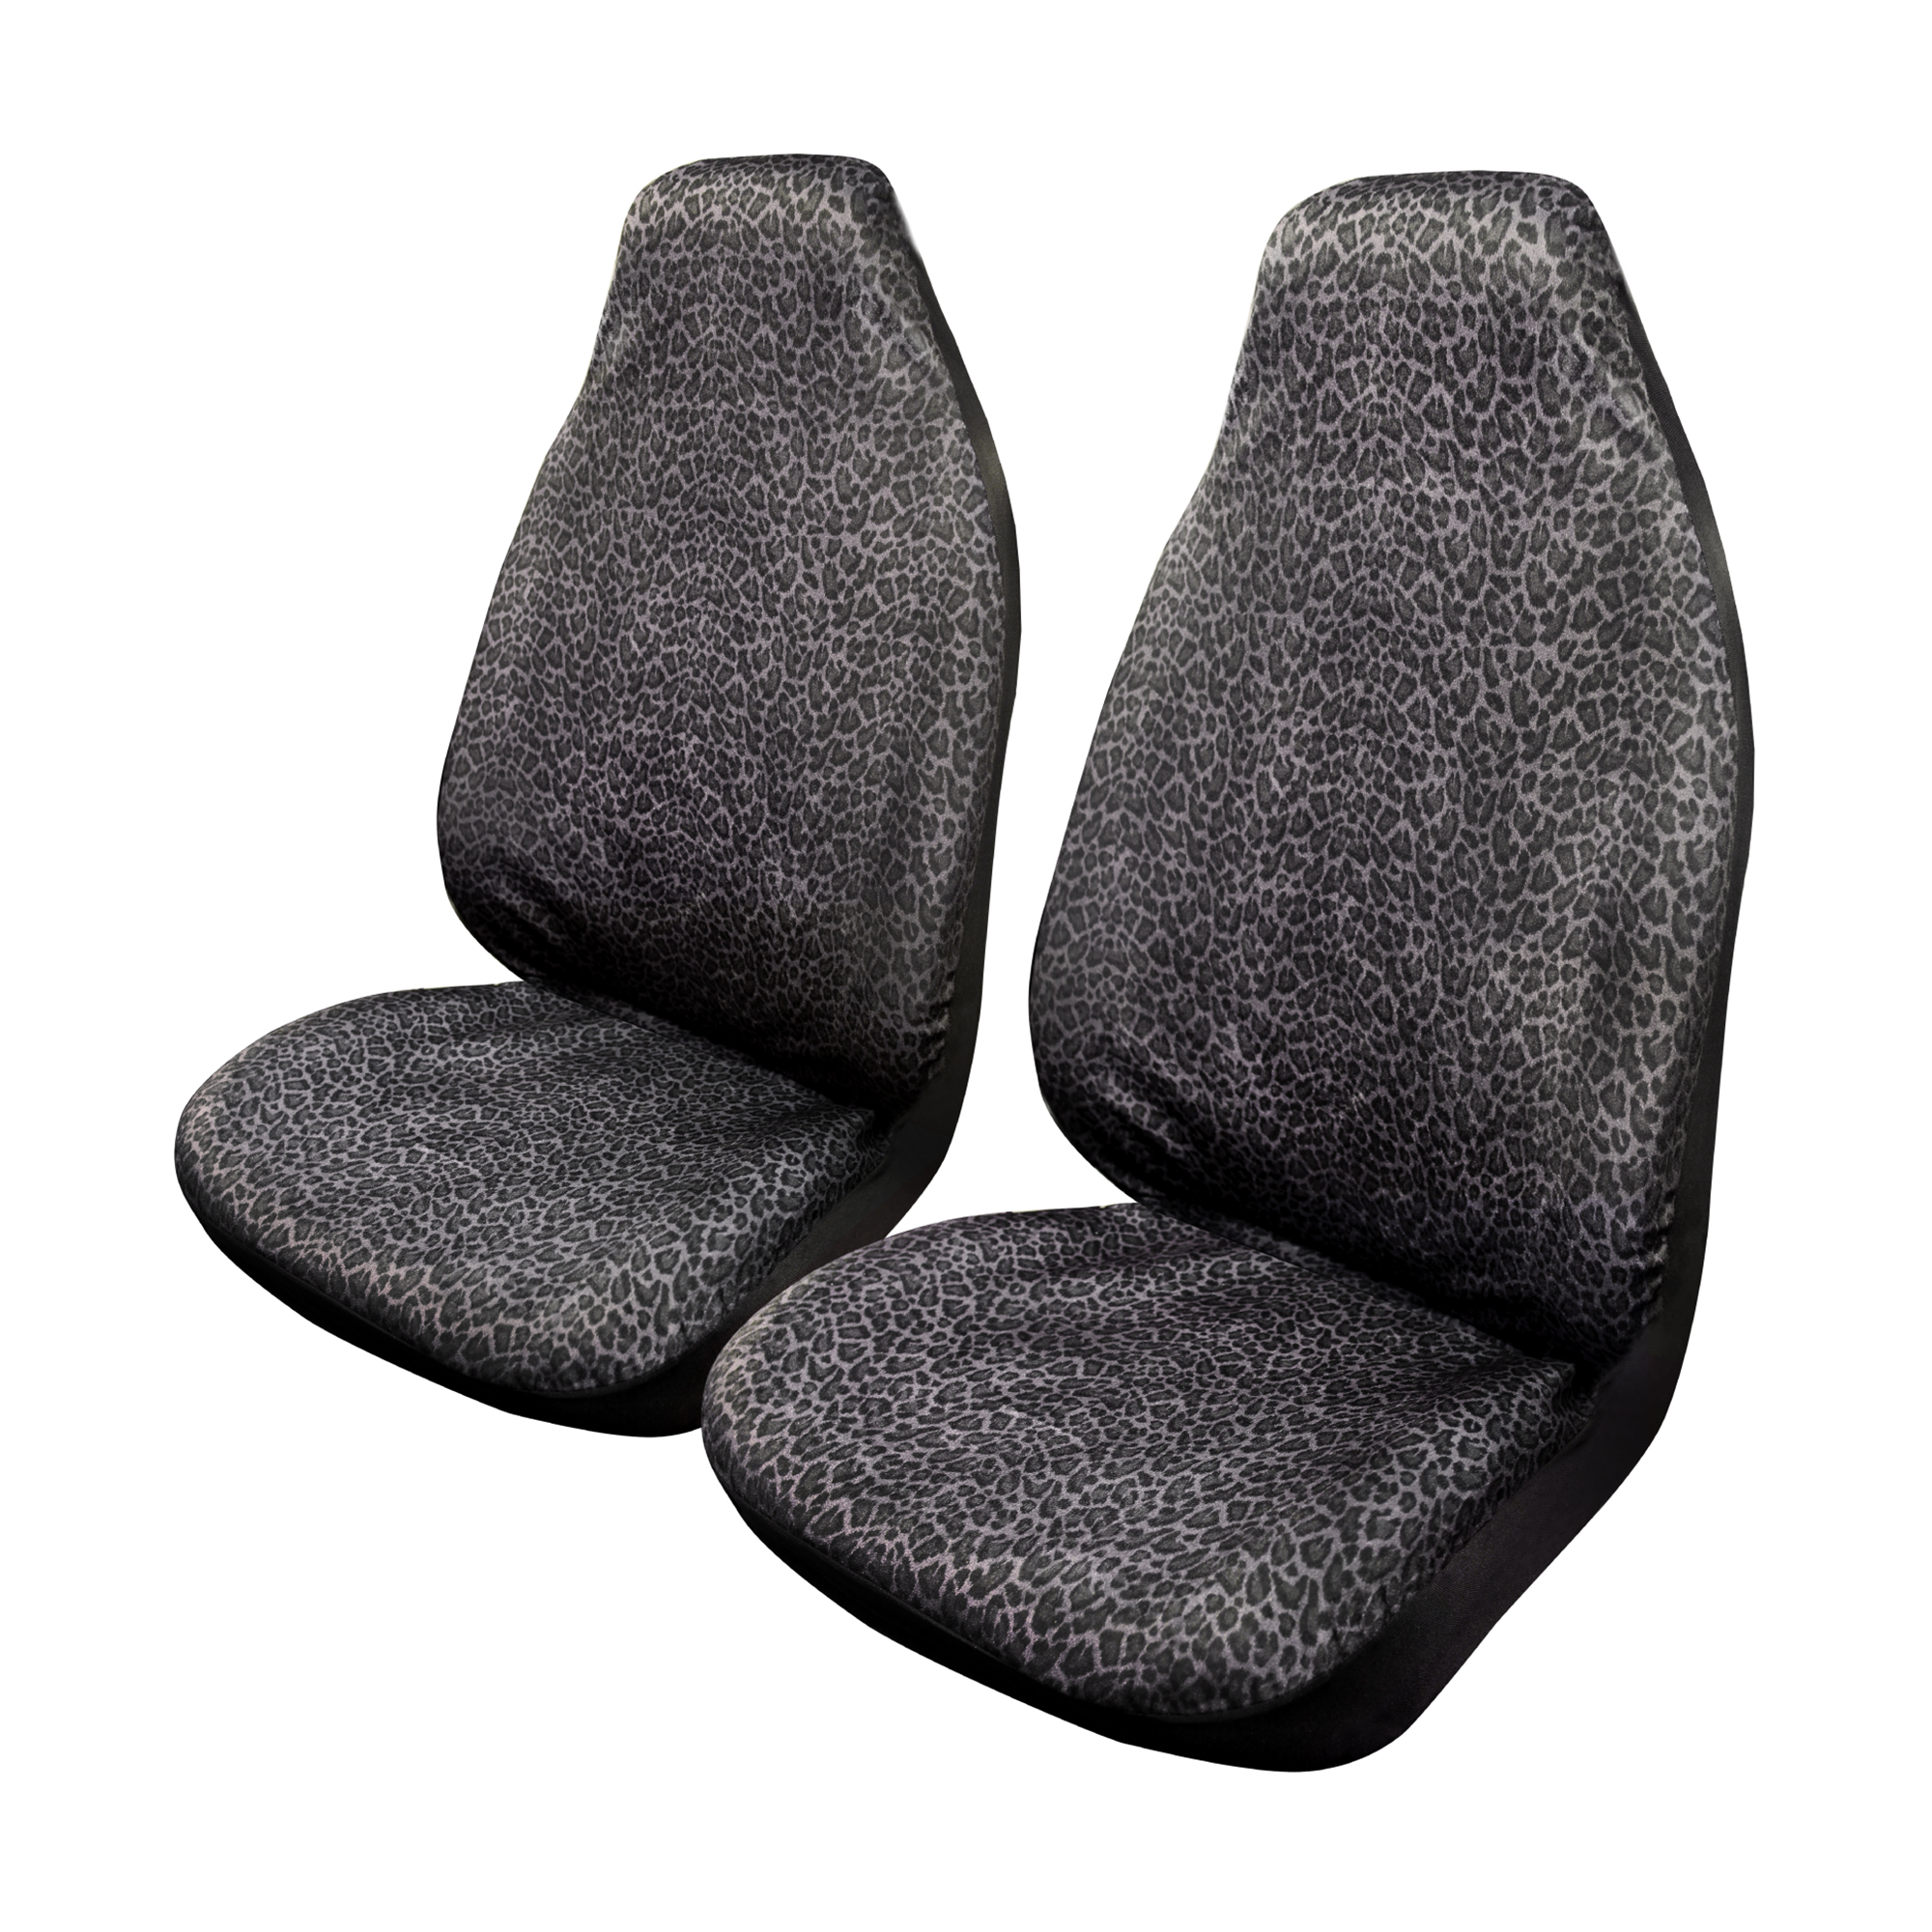 black-leopard-seat-covers